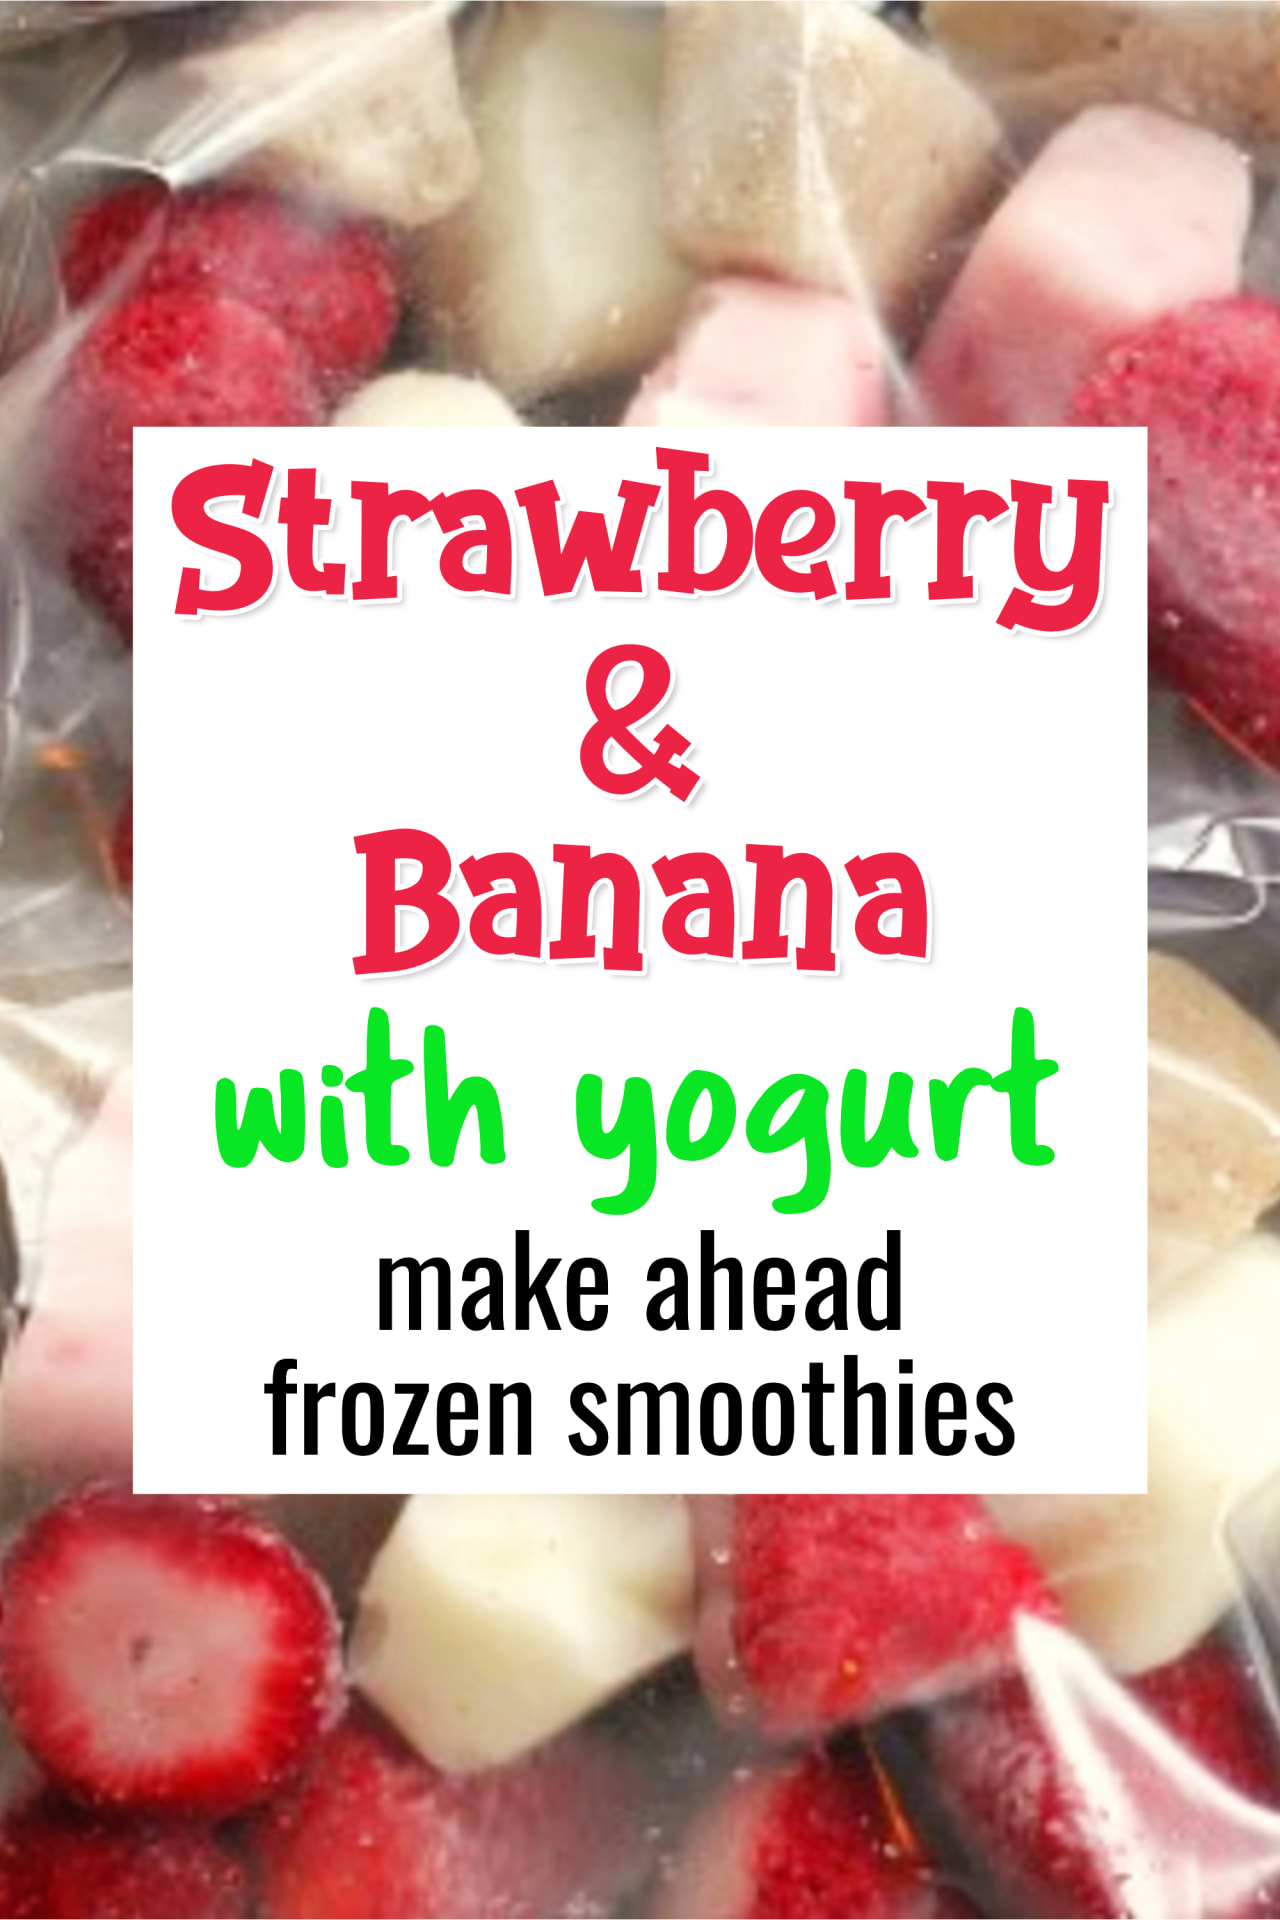 Frozen Fruit Smoothie Recipes - Easy Frozen Strawberry Banana Smoothie With Yogurt - These insanely good make ahead smoothie bags are so easy - just pop your fruit into a baggy or Ziploc and put it in the freezer to use in your blender whenever you want to make a fast and EASY breakfast fruit smoothie - this smoothie has strawberry, banana and yogurt and is pretty good for weight loss and very energizing!